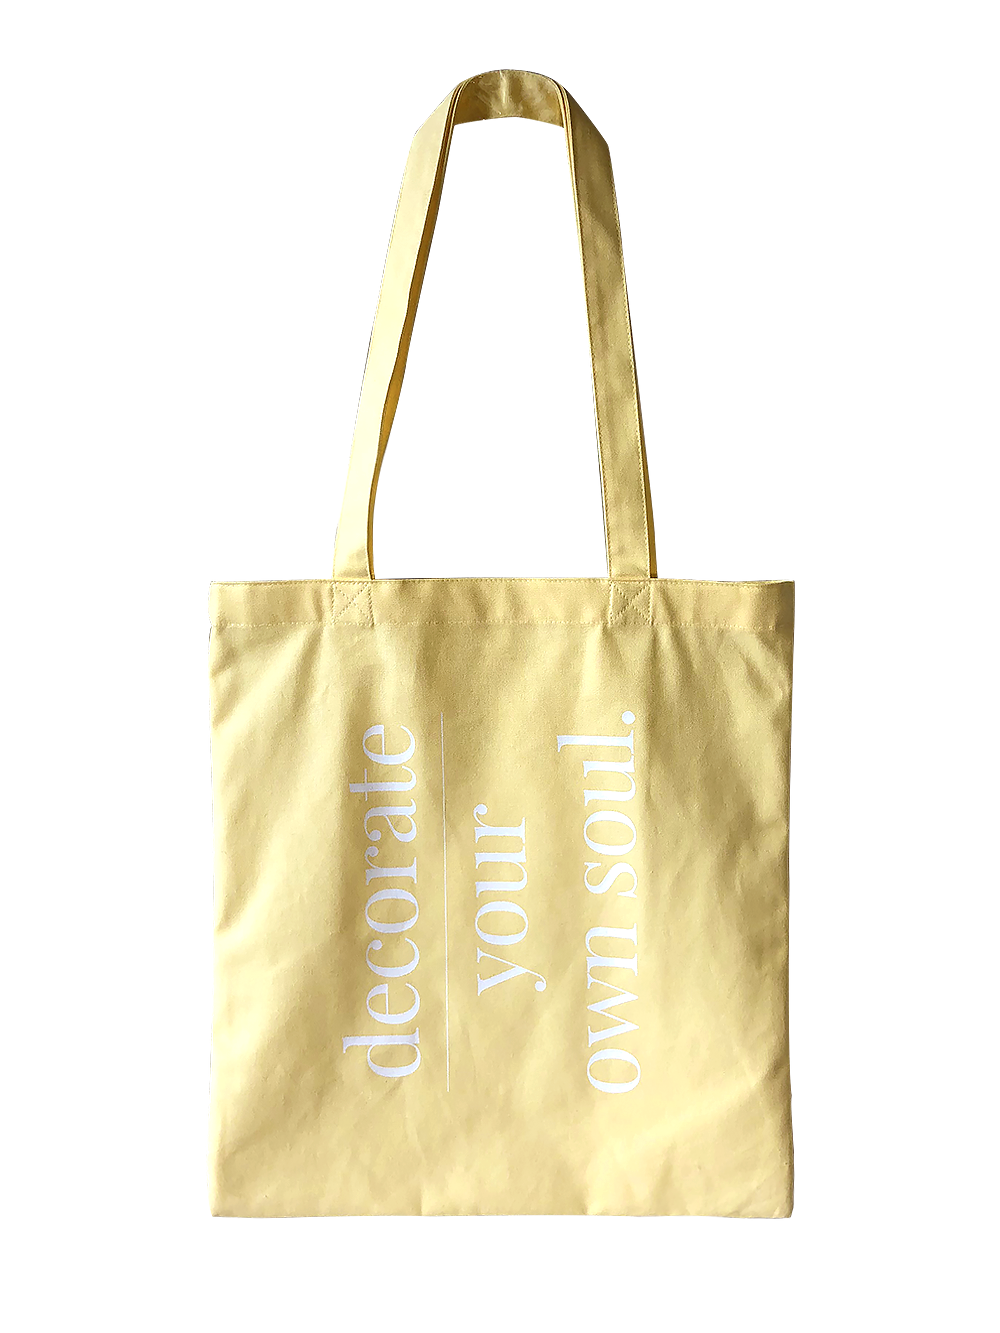 Lemon & Bread bag [Lemon]